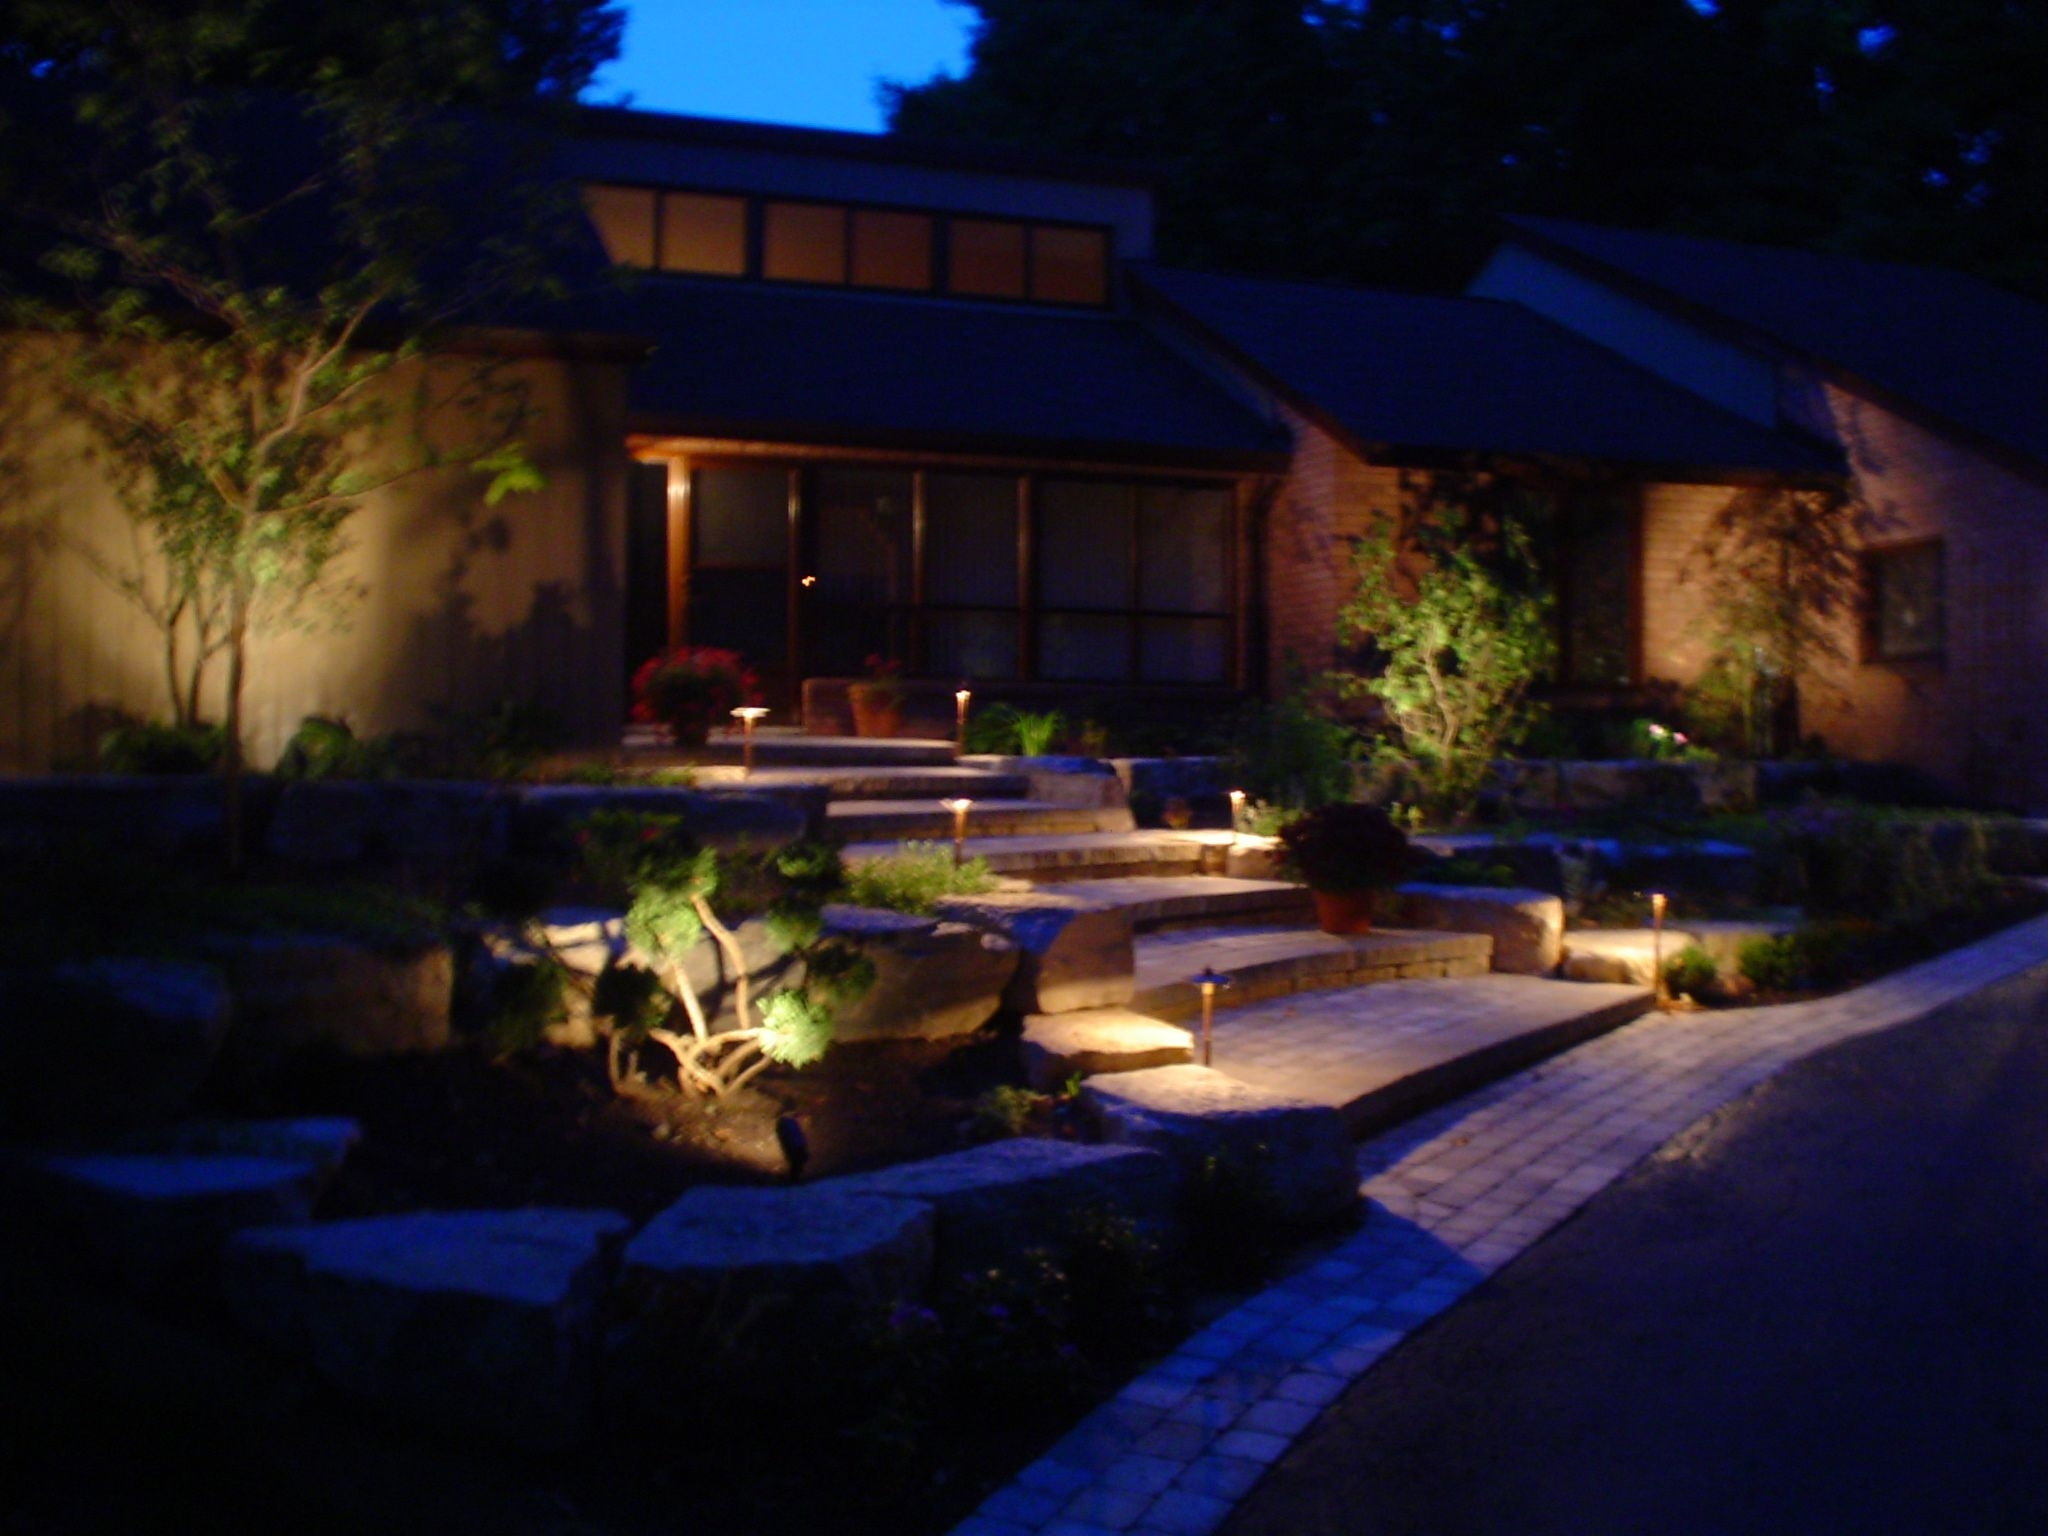 Recent Outdoor Low Voltage Lanterns With Backyard++Landscaping+Lighting (View 13 of 20)